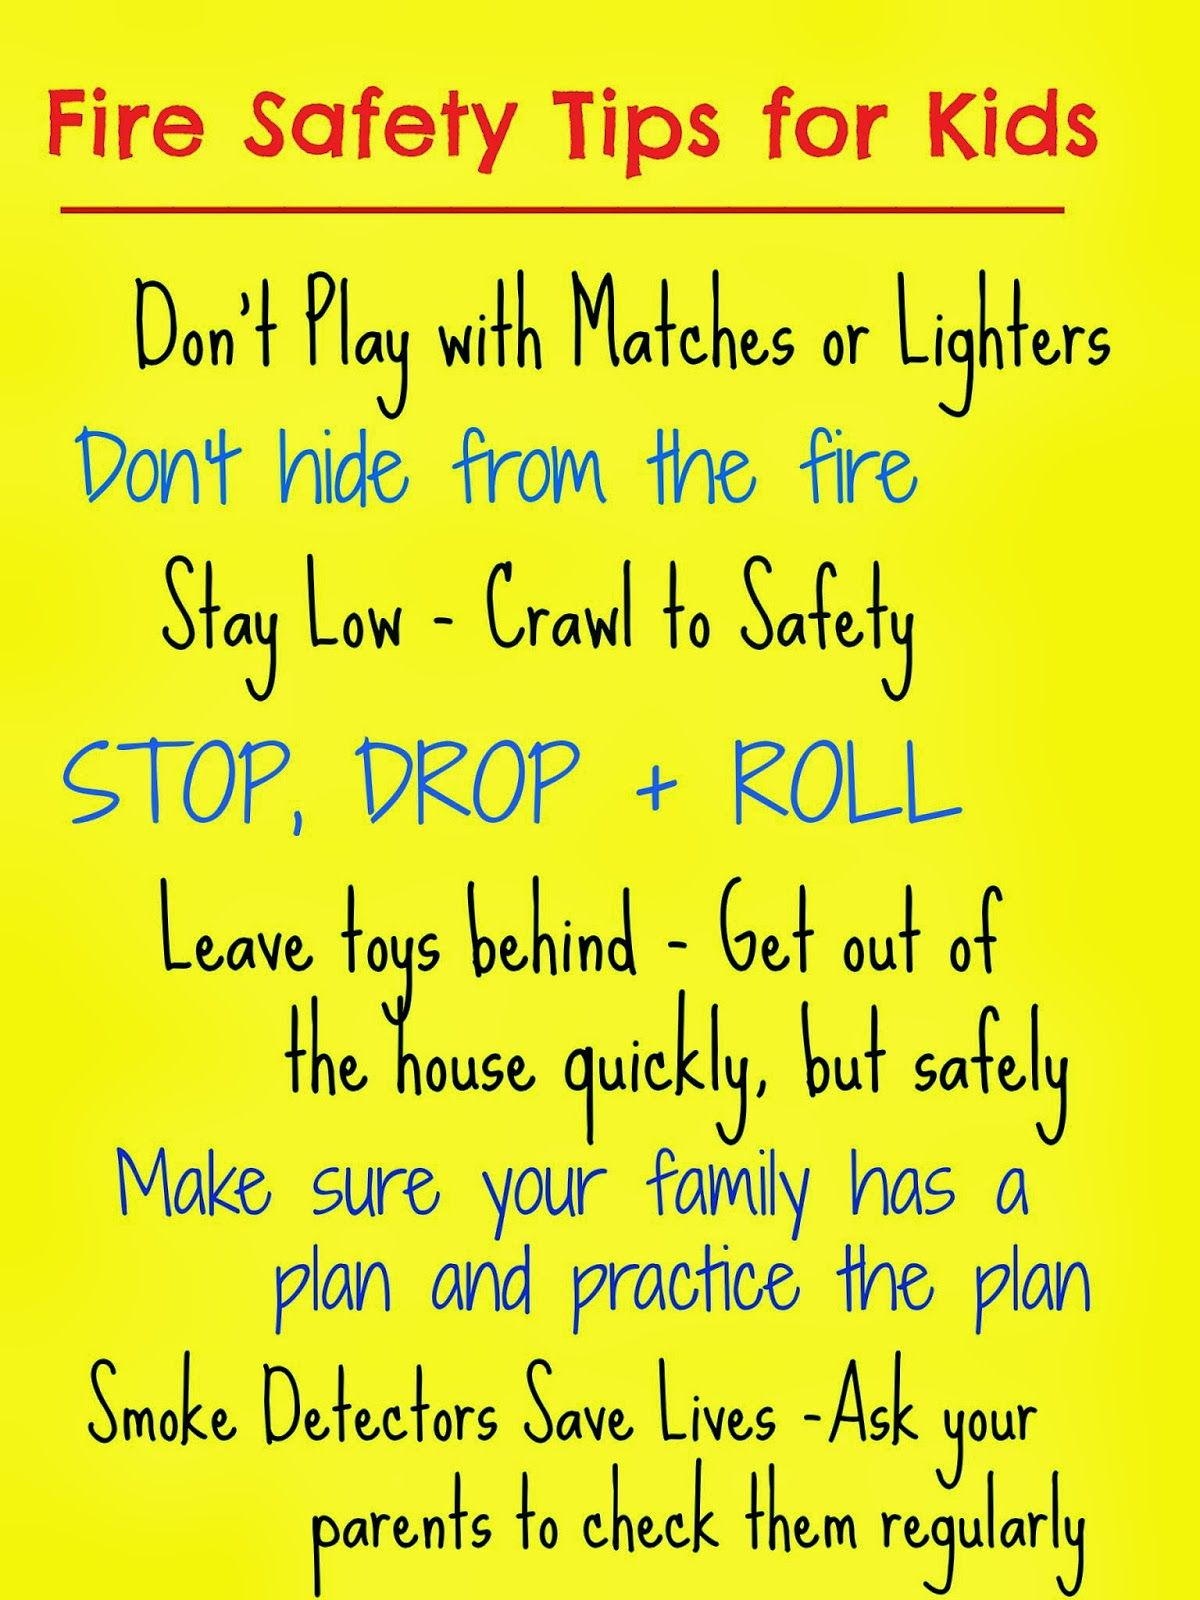 Does Your Family Have A Fire Plan? Do You Talk About Fire Safety With Your  Kids? Being Prepared Can Save Lives. 10 Tips From A Firefighter + ...